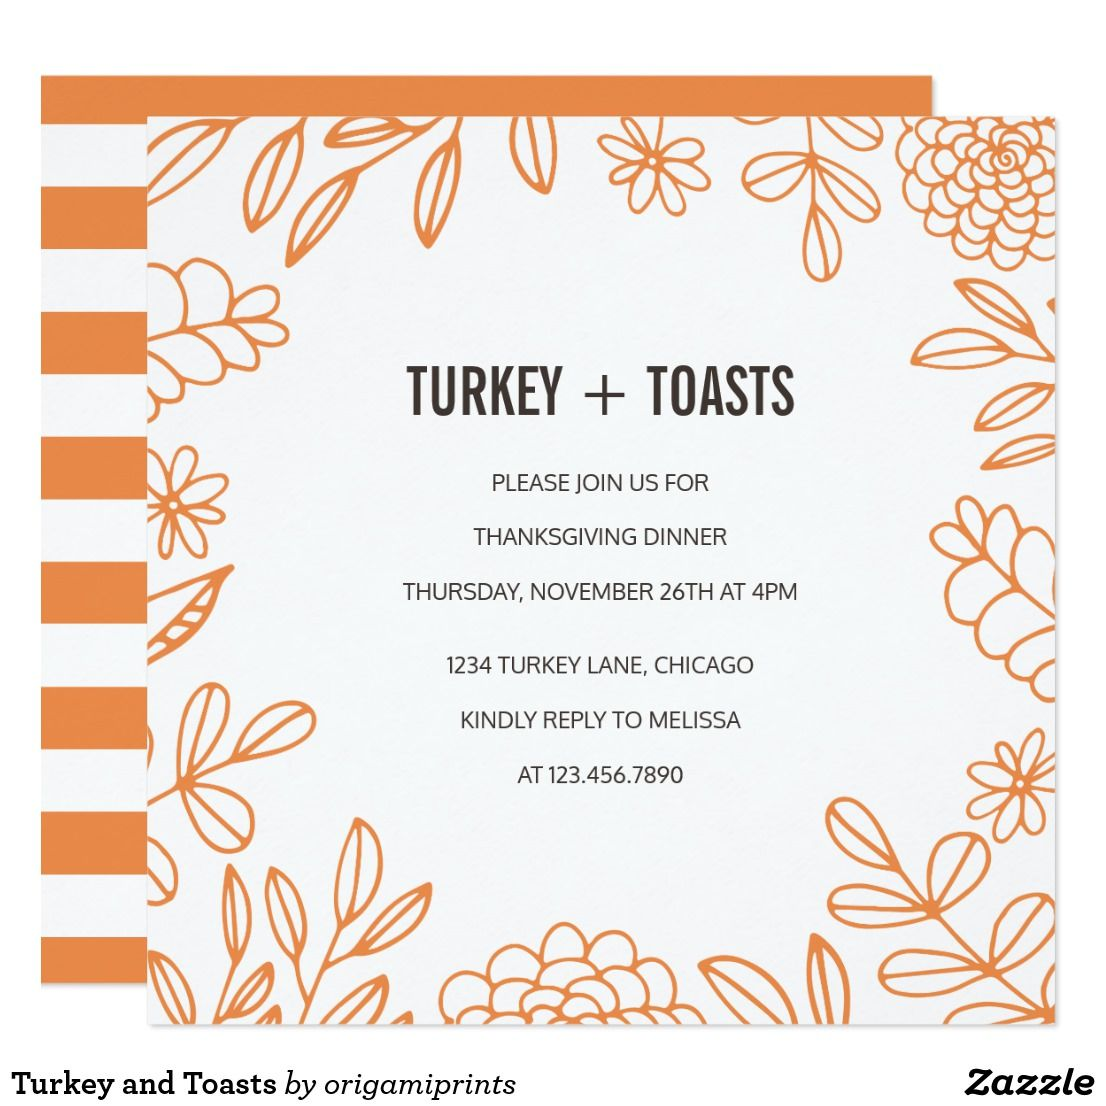 Turkey and toasts card modern thanksgiving dinner party invite turkey and toasts card modern thanksgiving dinner party invite design featuring orange floral designs and contemporary monicamarmolfo Choice Image